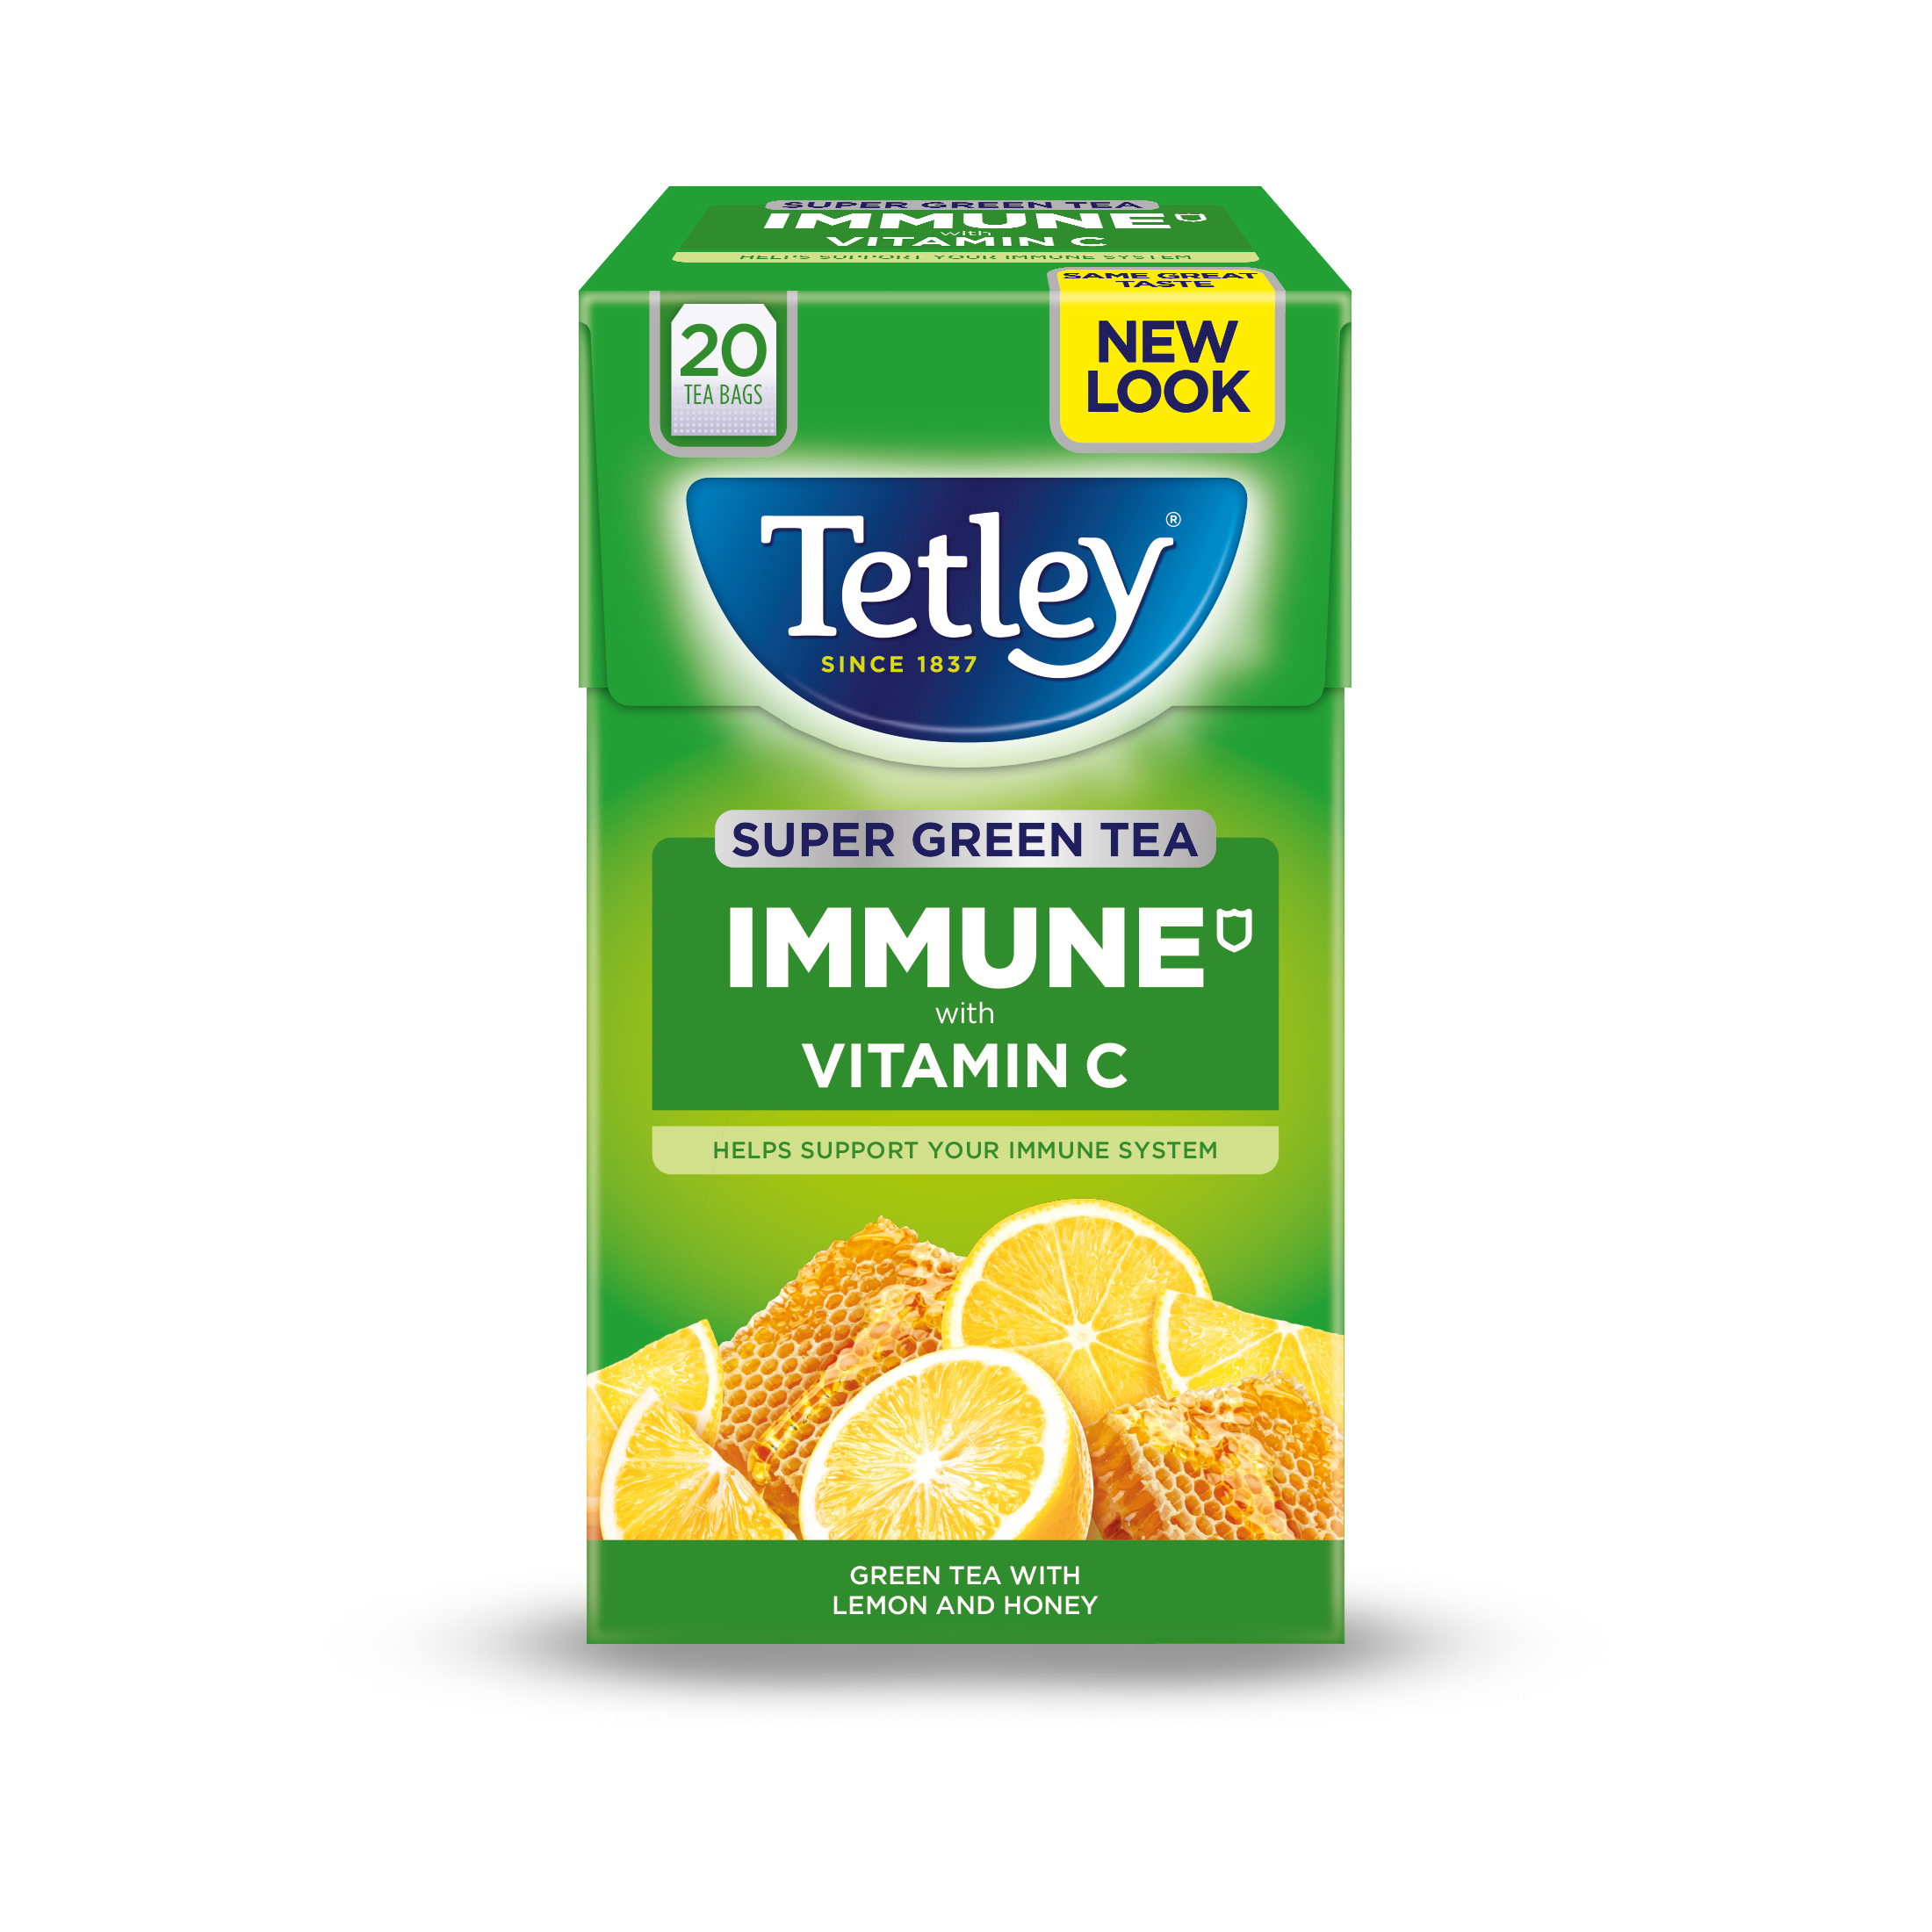 Tea Tetley Super Green Tea IMMUNE Lemon Honey with Vitamin C Ref 4619A Pack 20